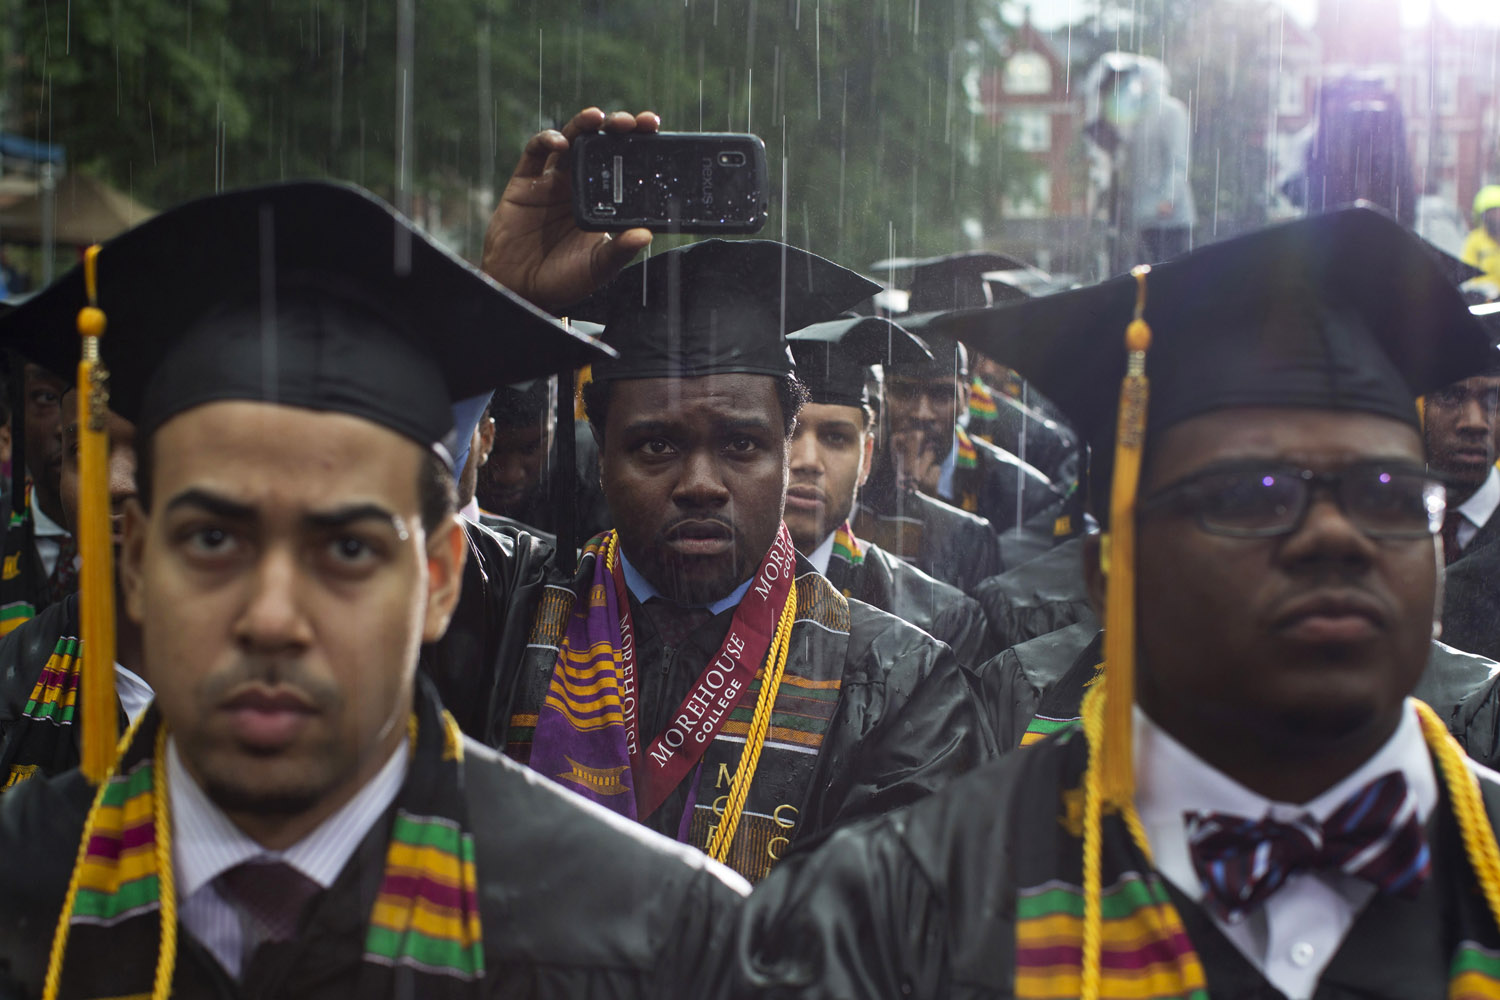 May 19, 2013. Graduates listen under heavy rain to President Barack Obama as he delivers the Morehouse College 129th Commencement ceremony address in Atlanta.